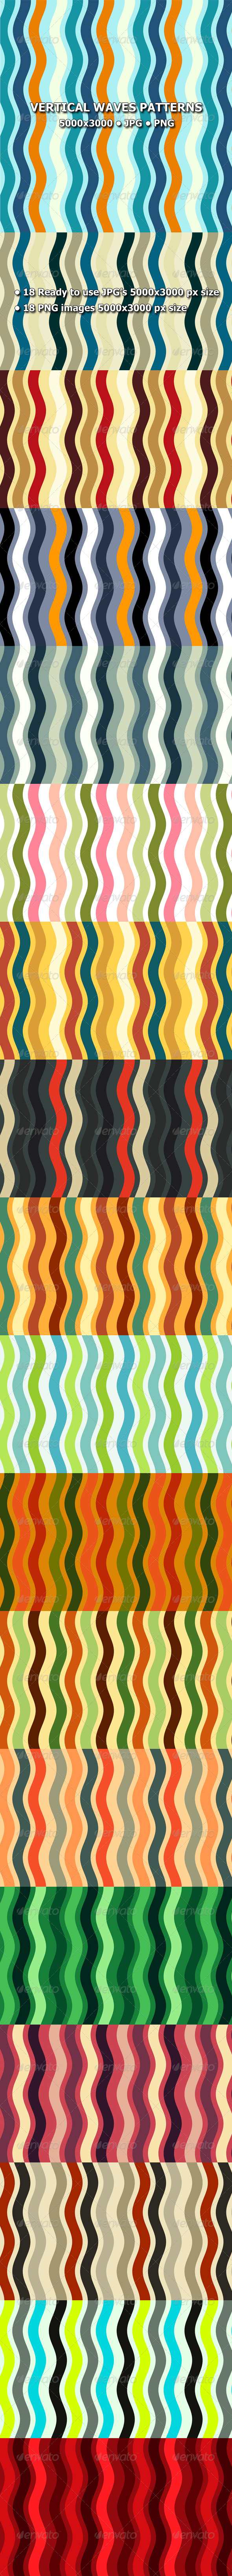 GraphicRiver Vertical Waves Patterns 8009615